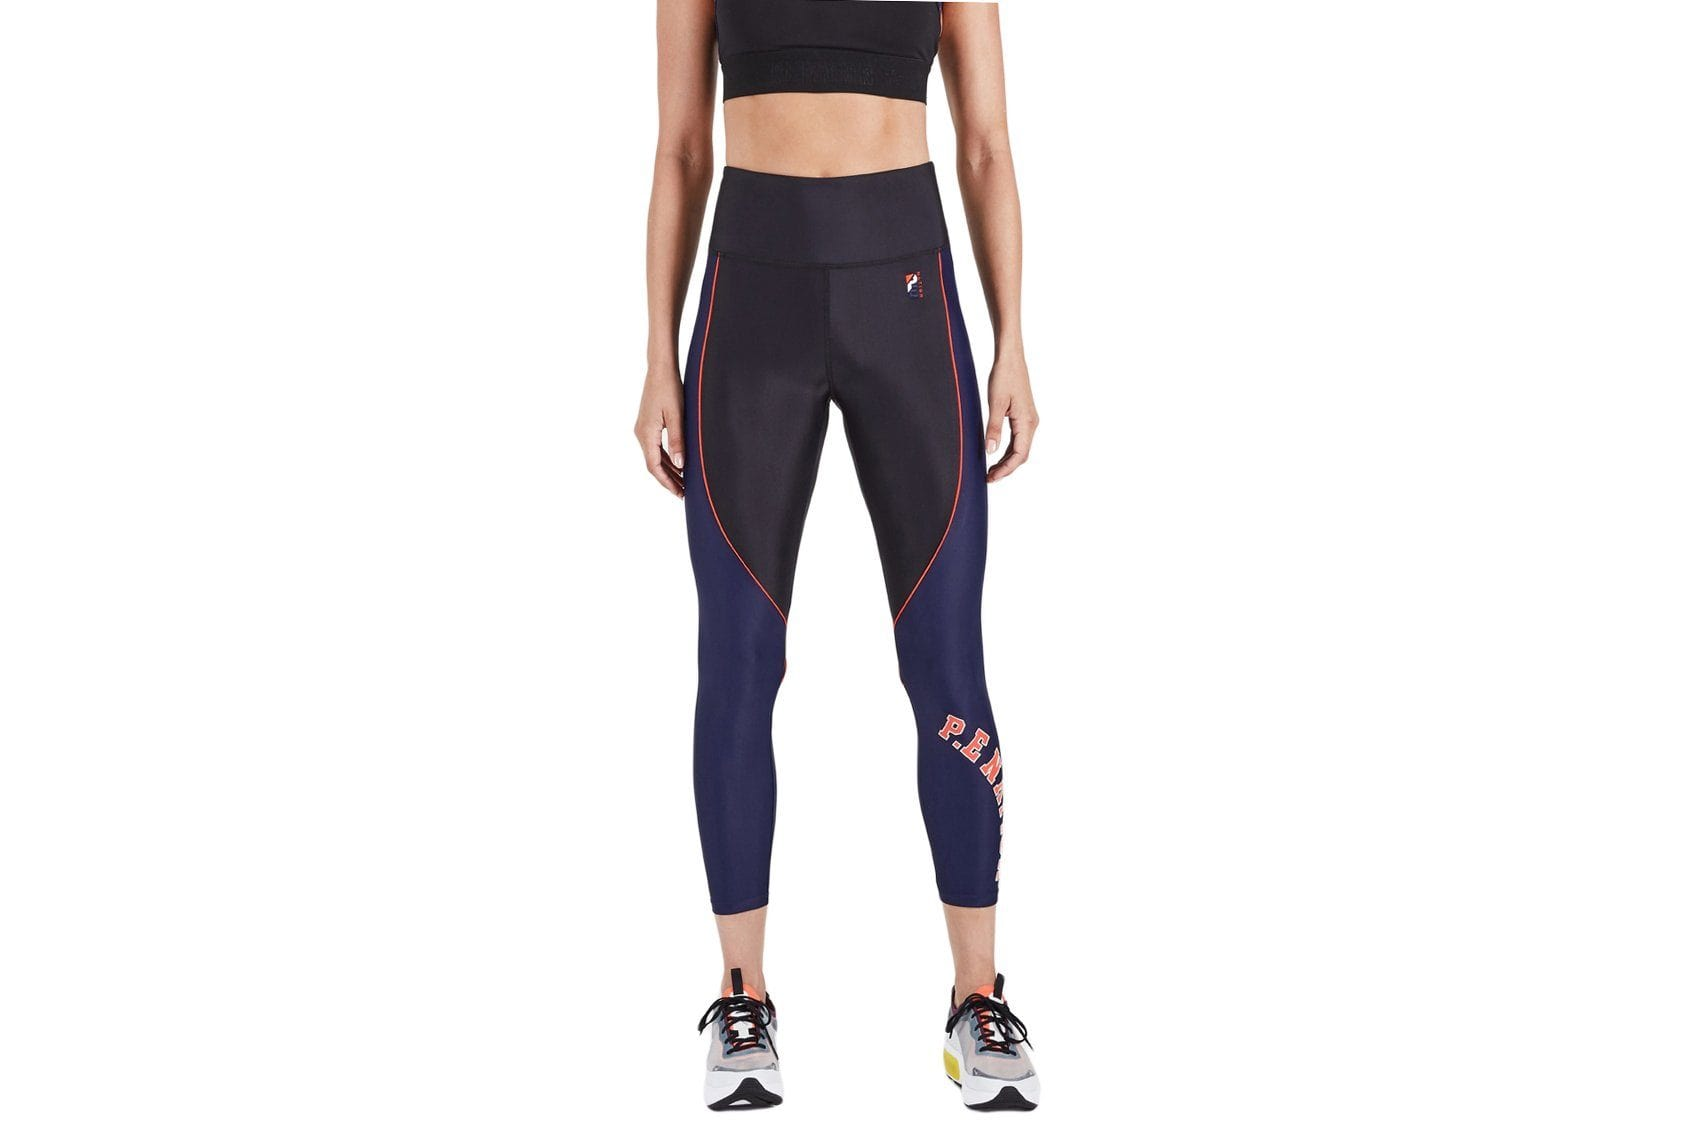 RALLY LEGGING - 19PE1G024 WOMENS SOFTGOODS P.E NATION